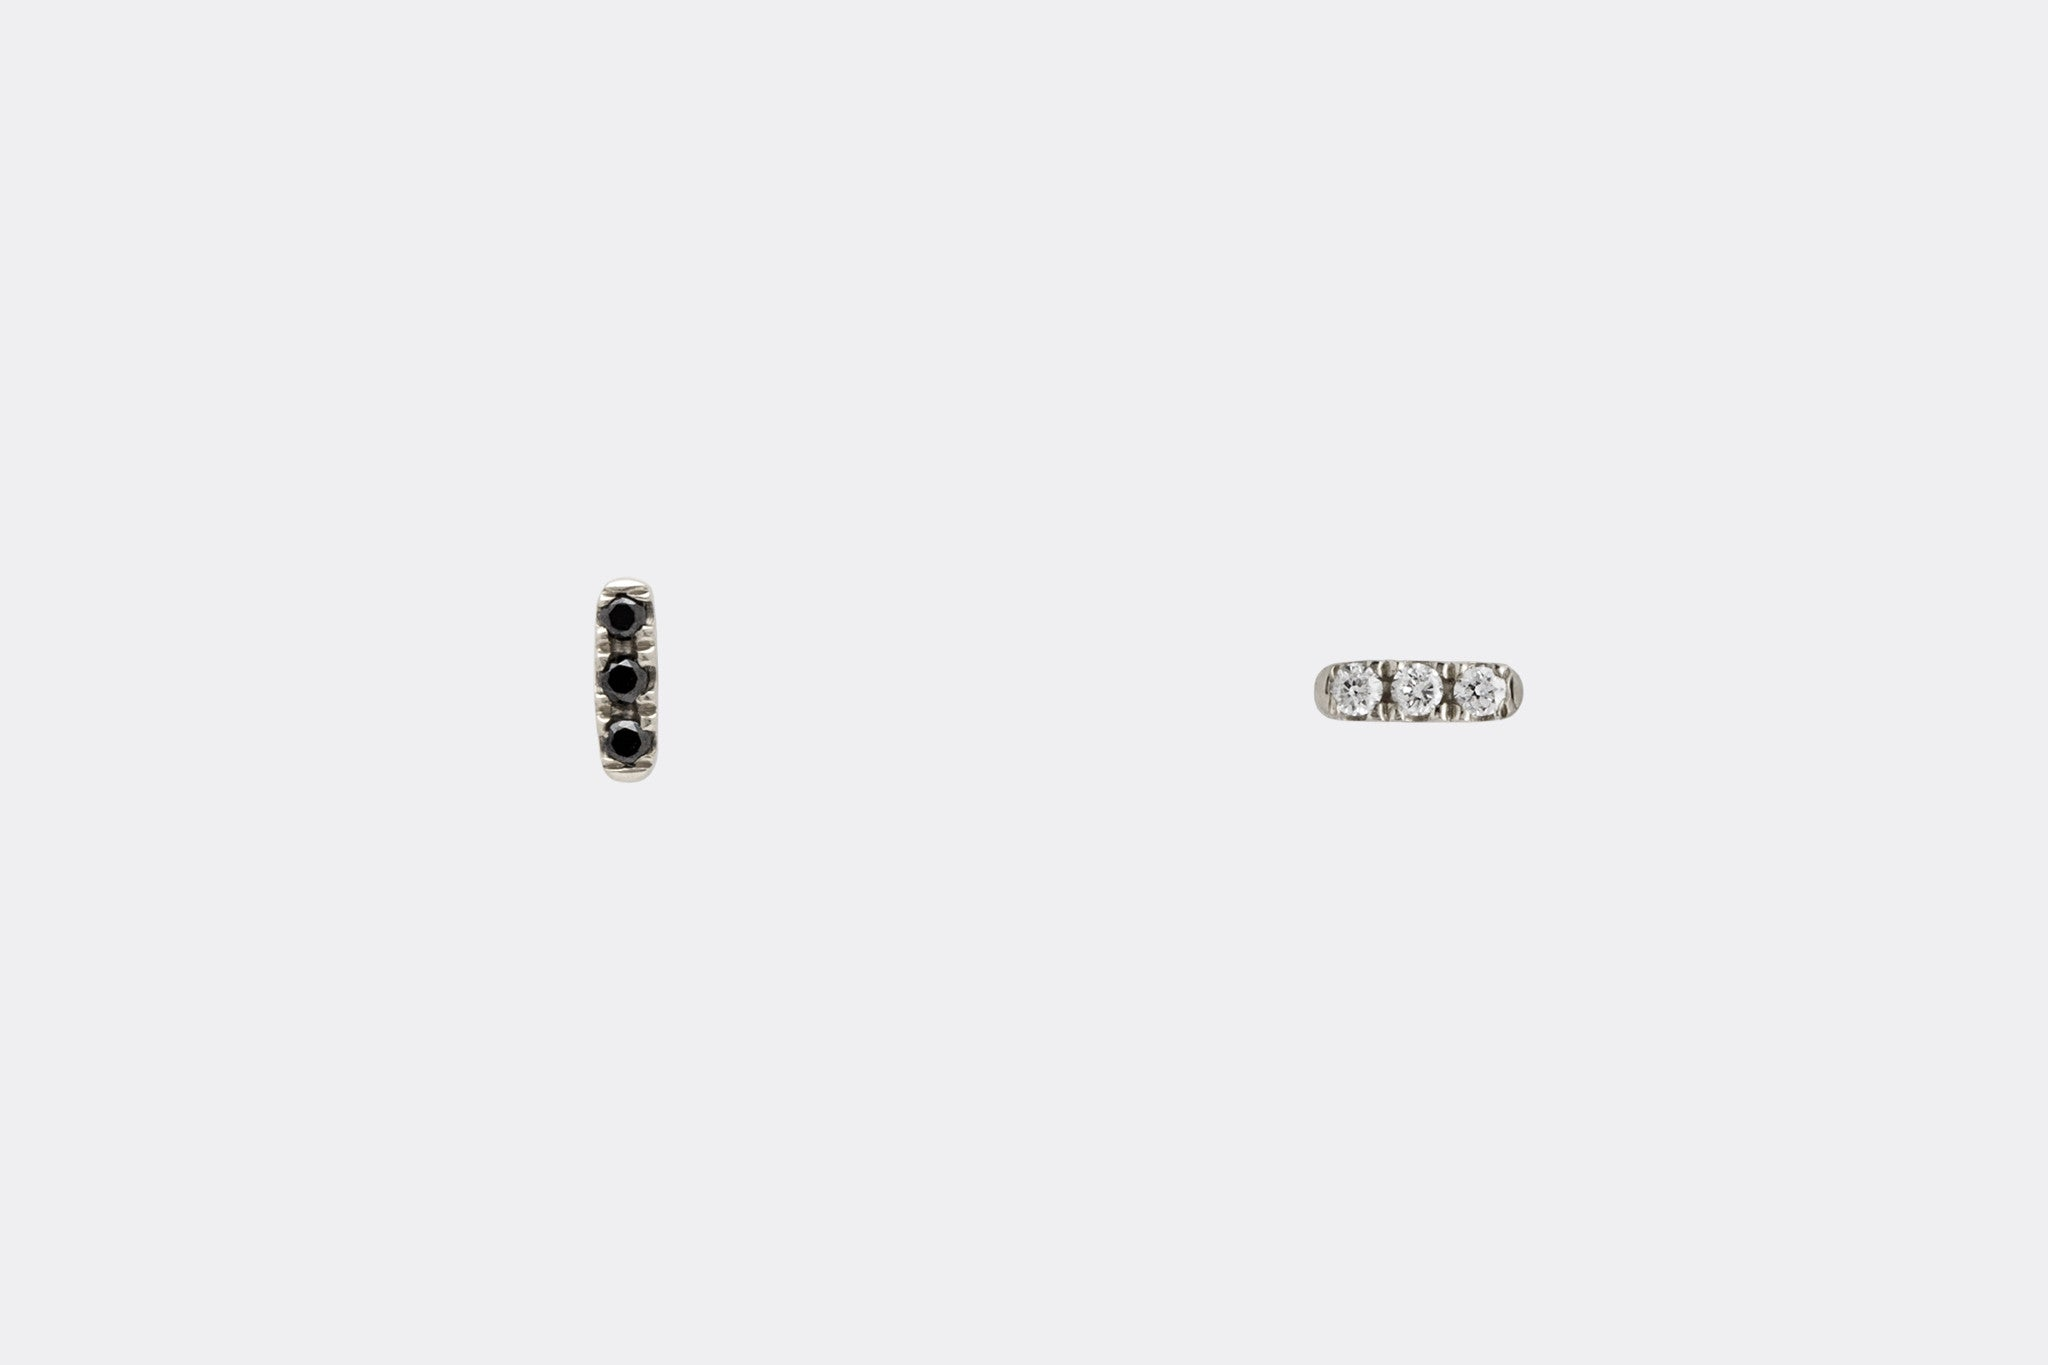 Mismatched 14k white Gold Tiny Diamond Bar Earrings E2318 E2319